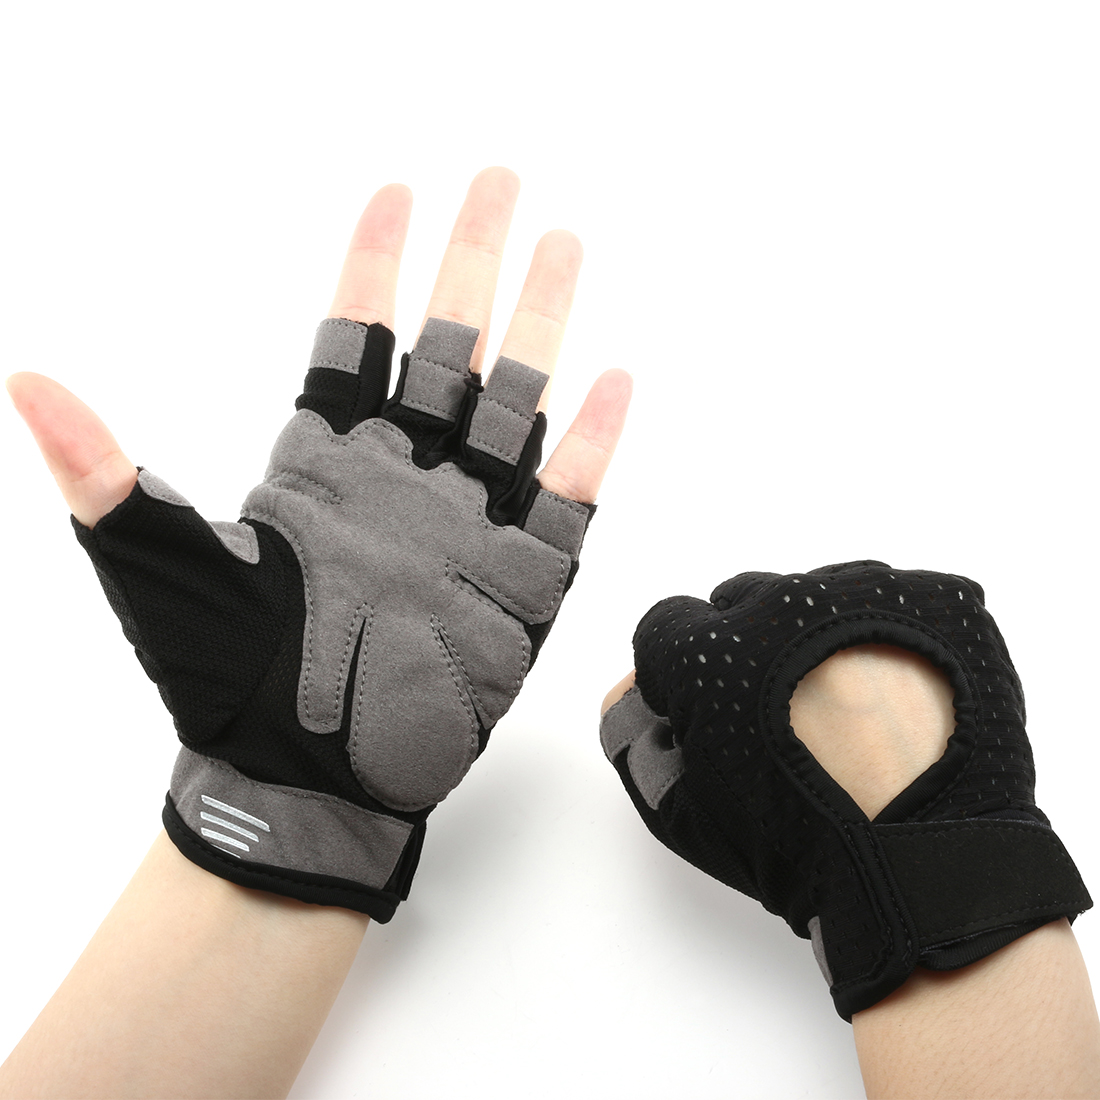 Summer Elasticized Fabric Anti-slip Sports Exercise Half Finger Cycling Gloves Black M Pair